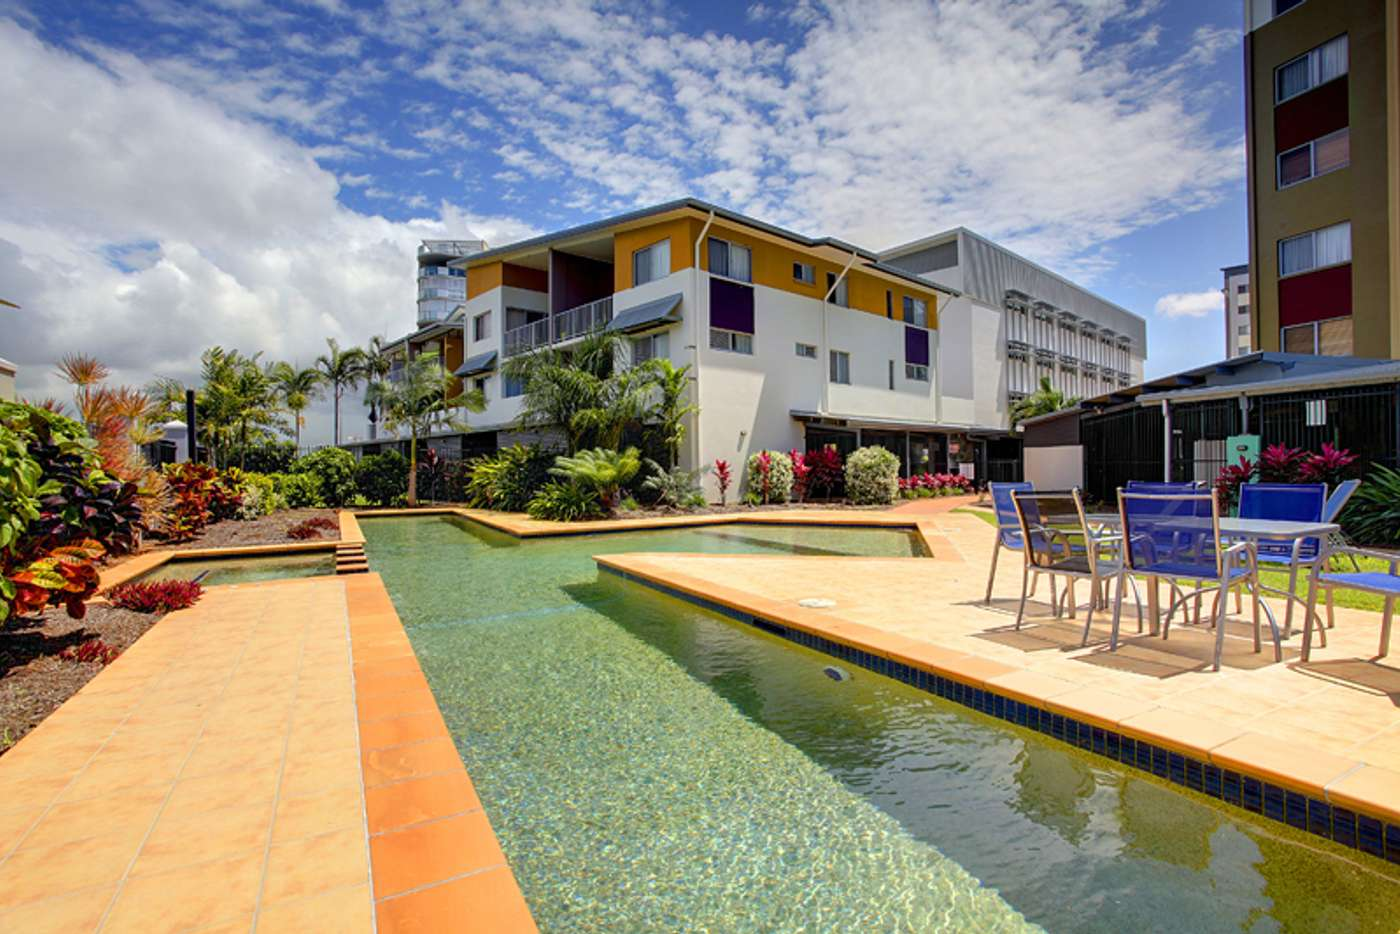 Main view of Homely apartment listing, 18/11-17 Stanley Street, Townsville City QLD 4810